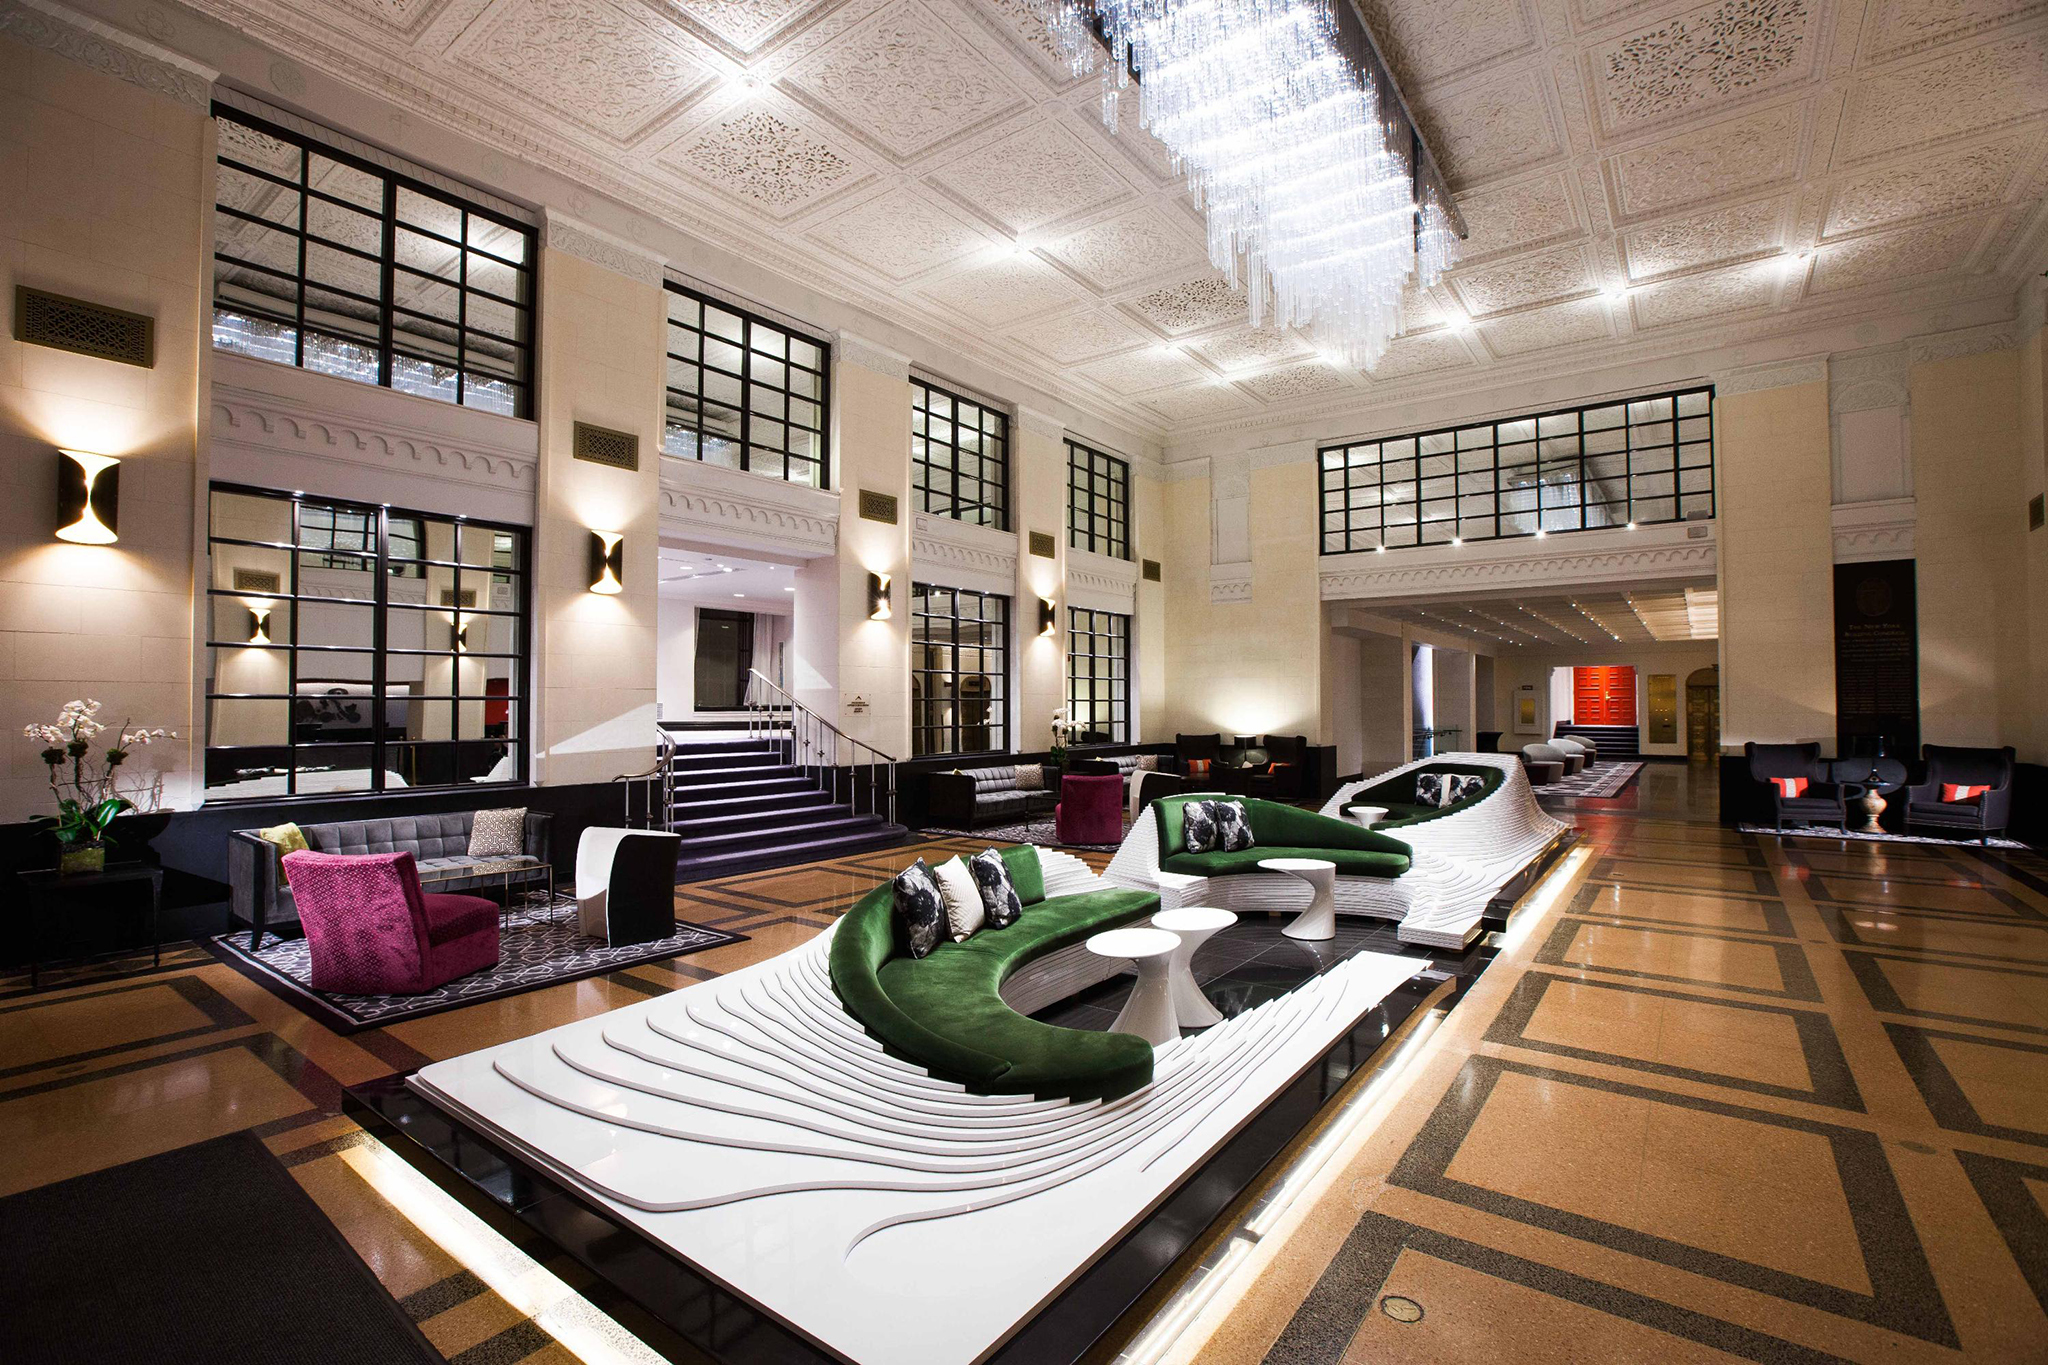 Best hotels near Madison Square Garden for concerts and sports